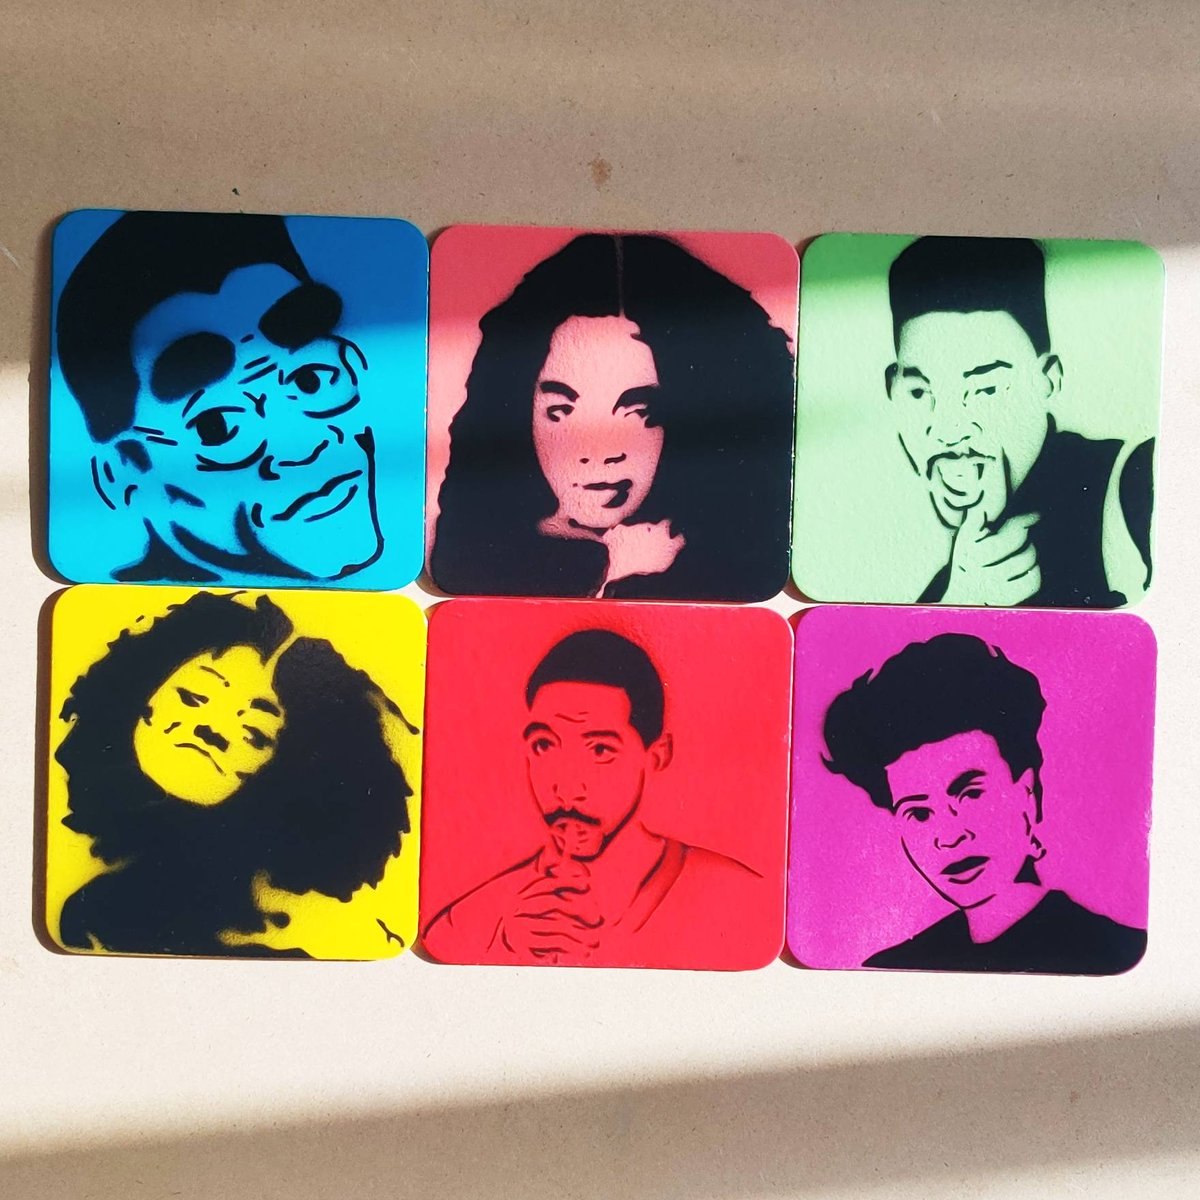 Now shipping. #pickya6 : For the Culture set.  Build your own, link in my Bio  #paintingsthatpopllc #fortheculture #dwaynewayne #denisehuxtable #willsmith #freddybrooks #chad #auntviv #adifferentworld #thefreshprince #insecure #barcoasters https://t.co/DHWvudn9Ub